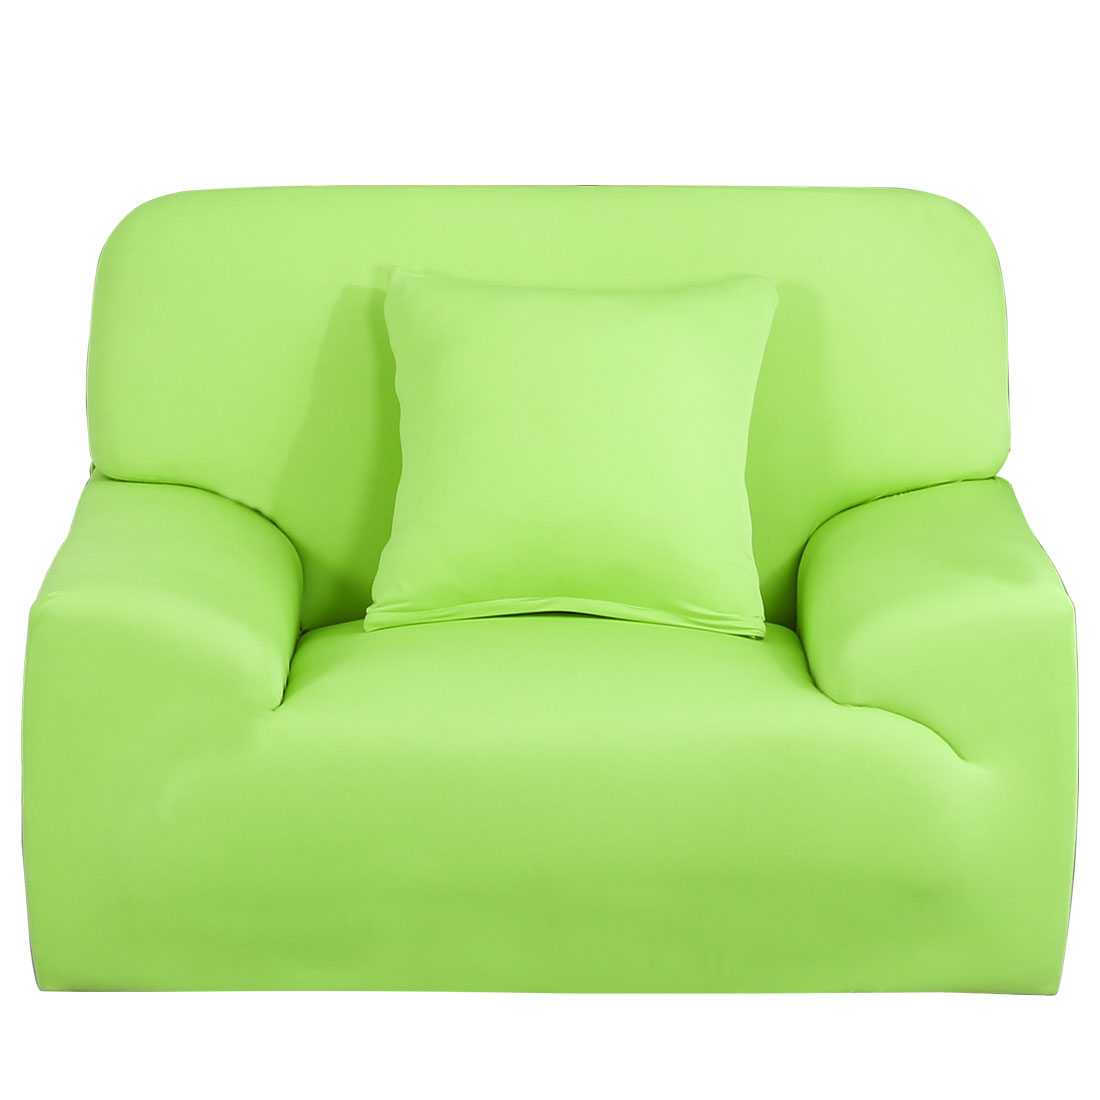 """Home Furniture Chair Sofa Couch Stretch Protector Cover Slipcover Green 35''-55"""""""